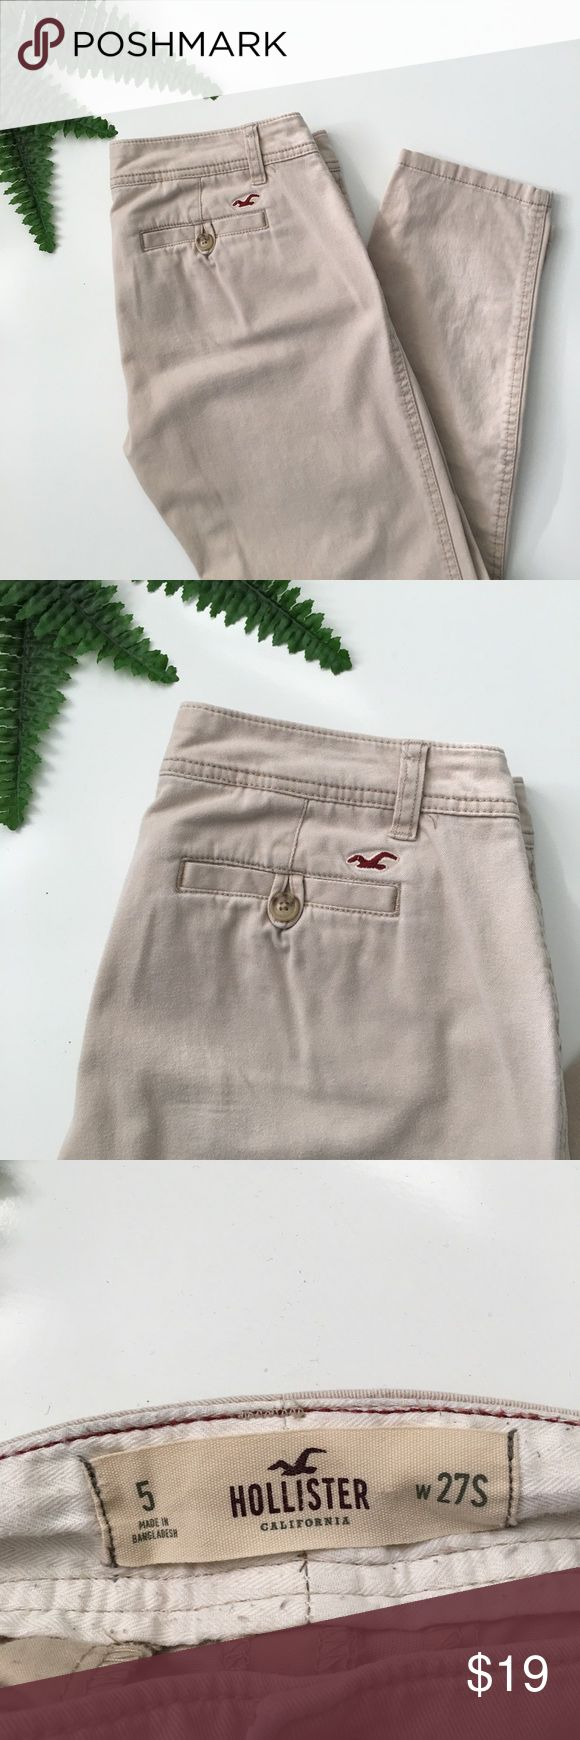 "HOLLISTER Boyfriend Fit Khaki Pants Gently used condition with no stains or holes. Inseam: 27"". Rise: 8 1/2"". Leg opening: 5 3/4"". Perfect pants to roll up with t-shirt and converse. Must have for every wardrobe. Ask any questions before purchasing. Hollister Pants Trousers"